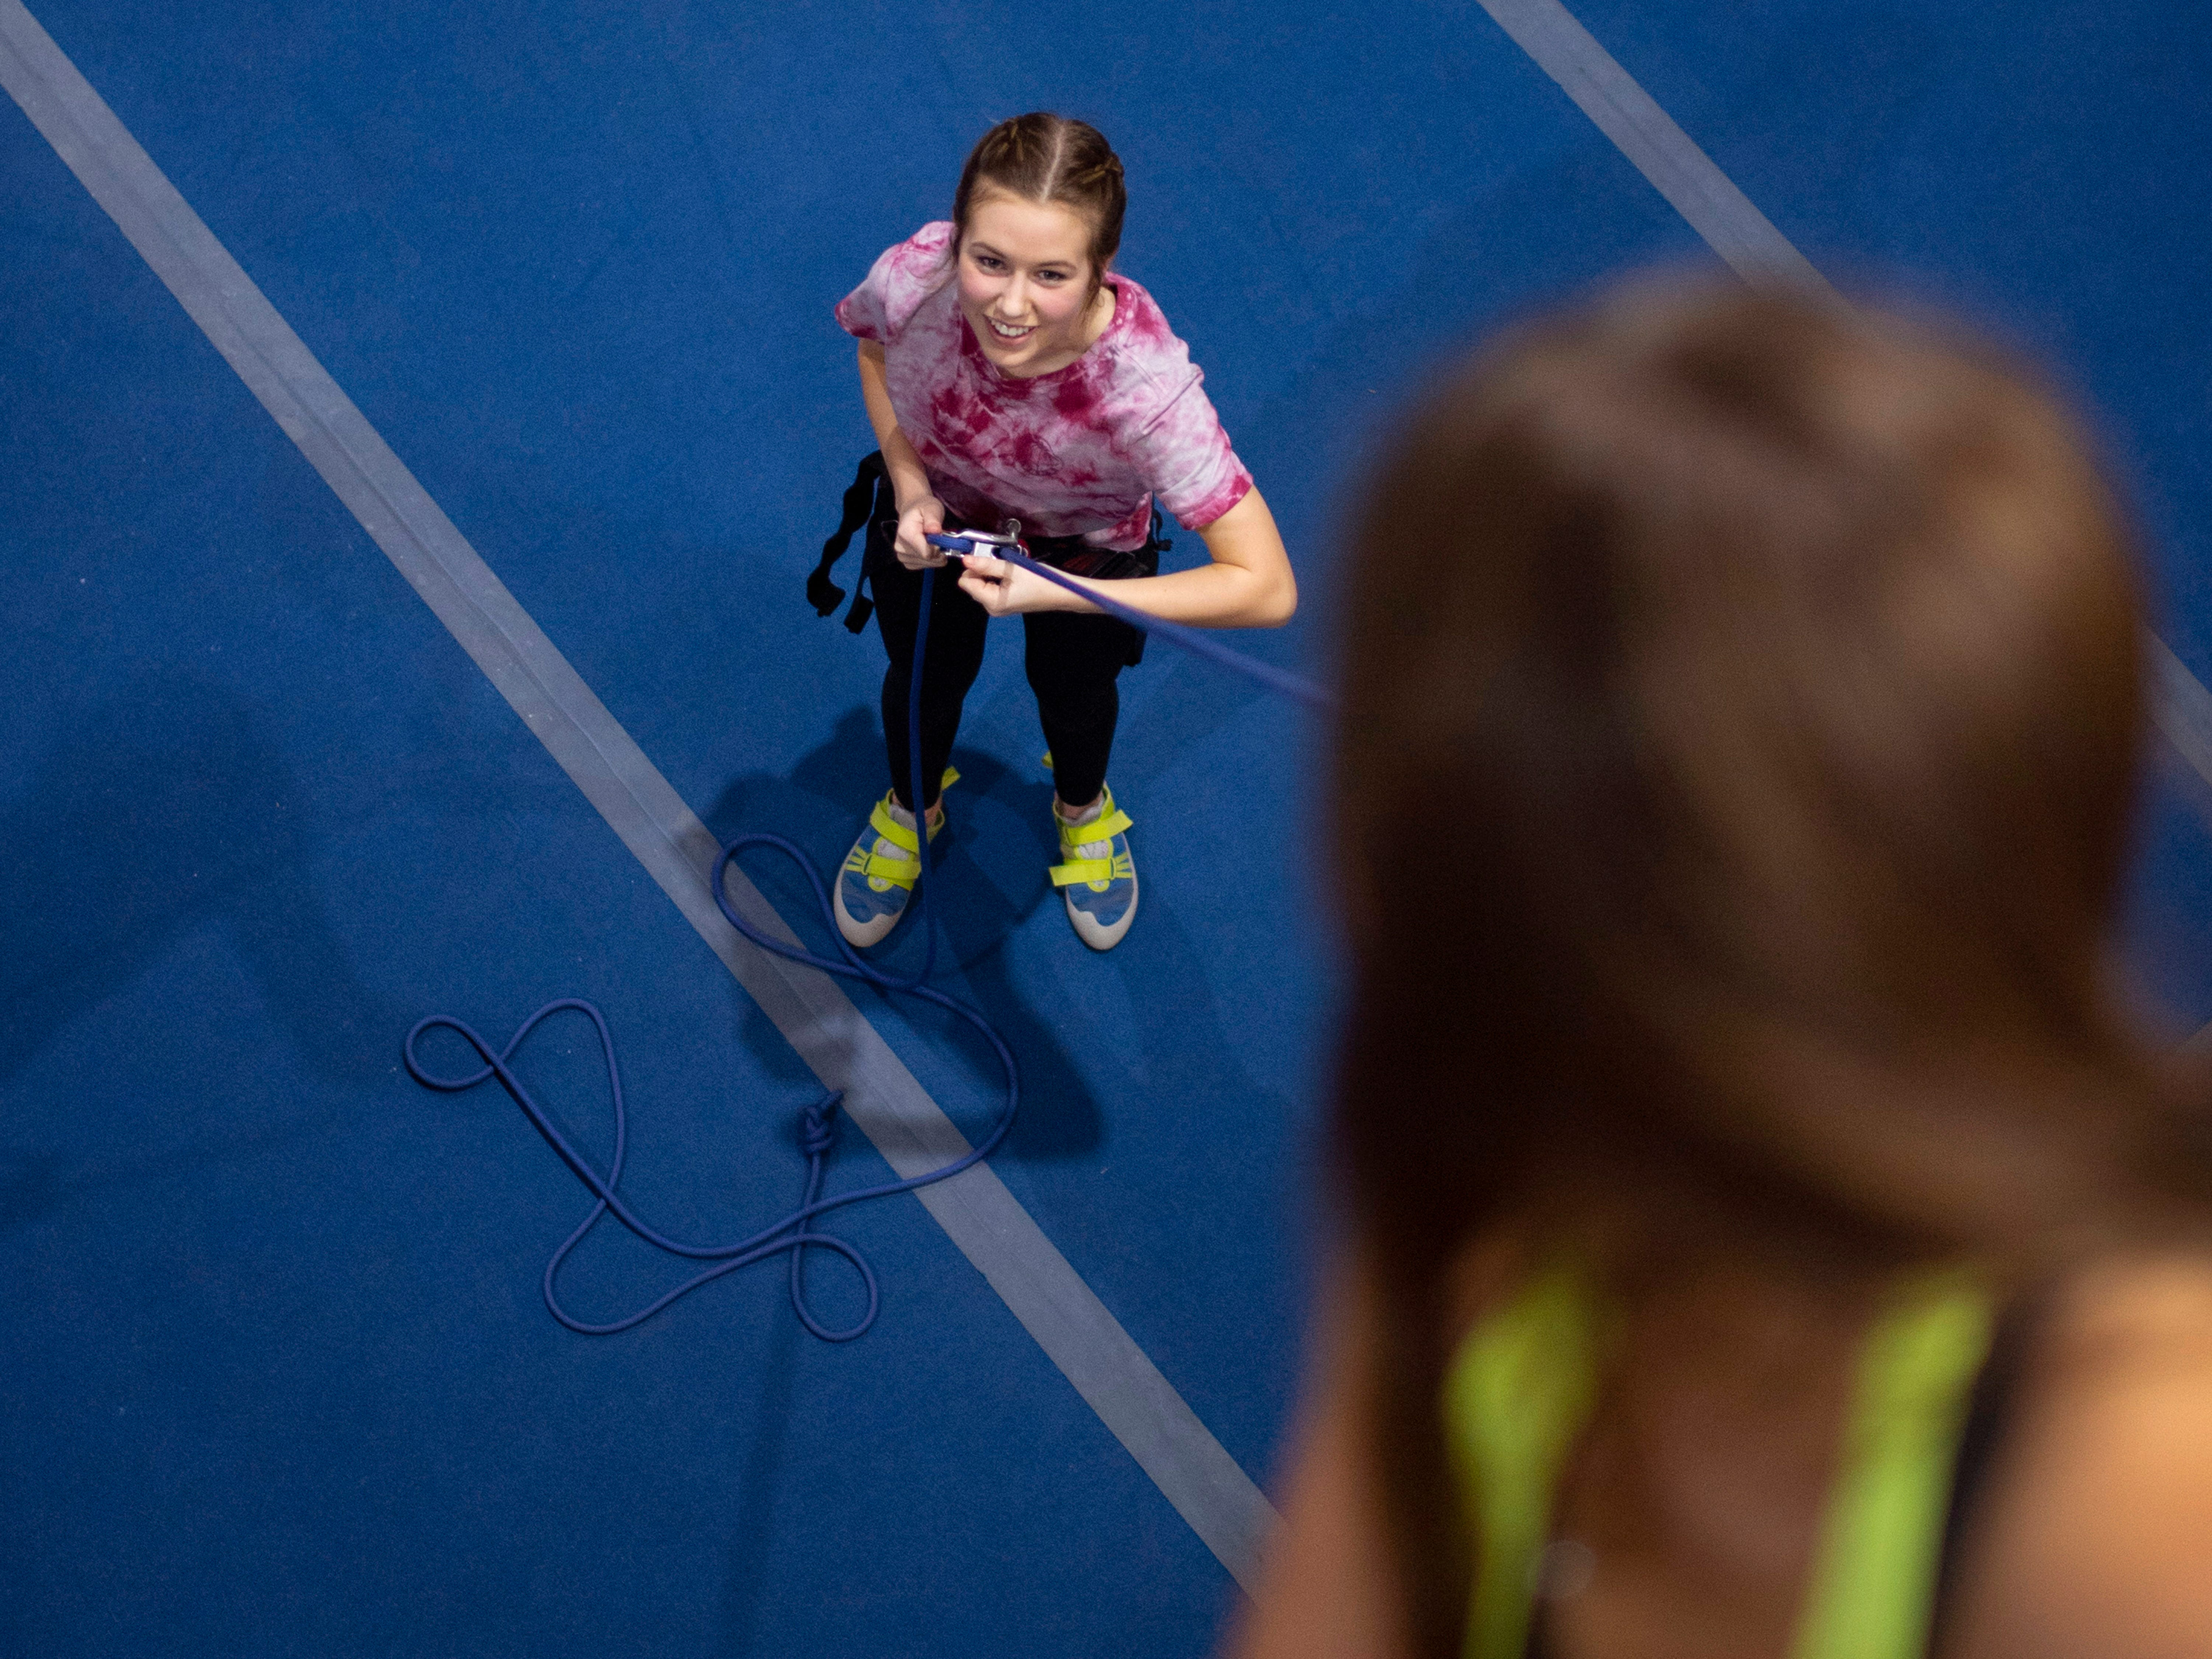 Ella Hubbard, 15, controls the slack of Ashton Zehner's rope during top-roping orientation at Vertical eXcape at 1315 N. Royal Avenue in Evansville Friday evening.